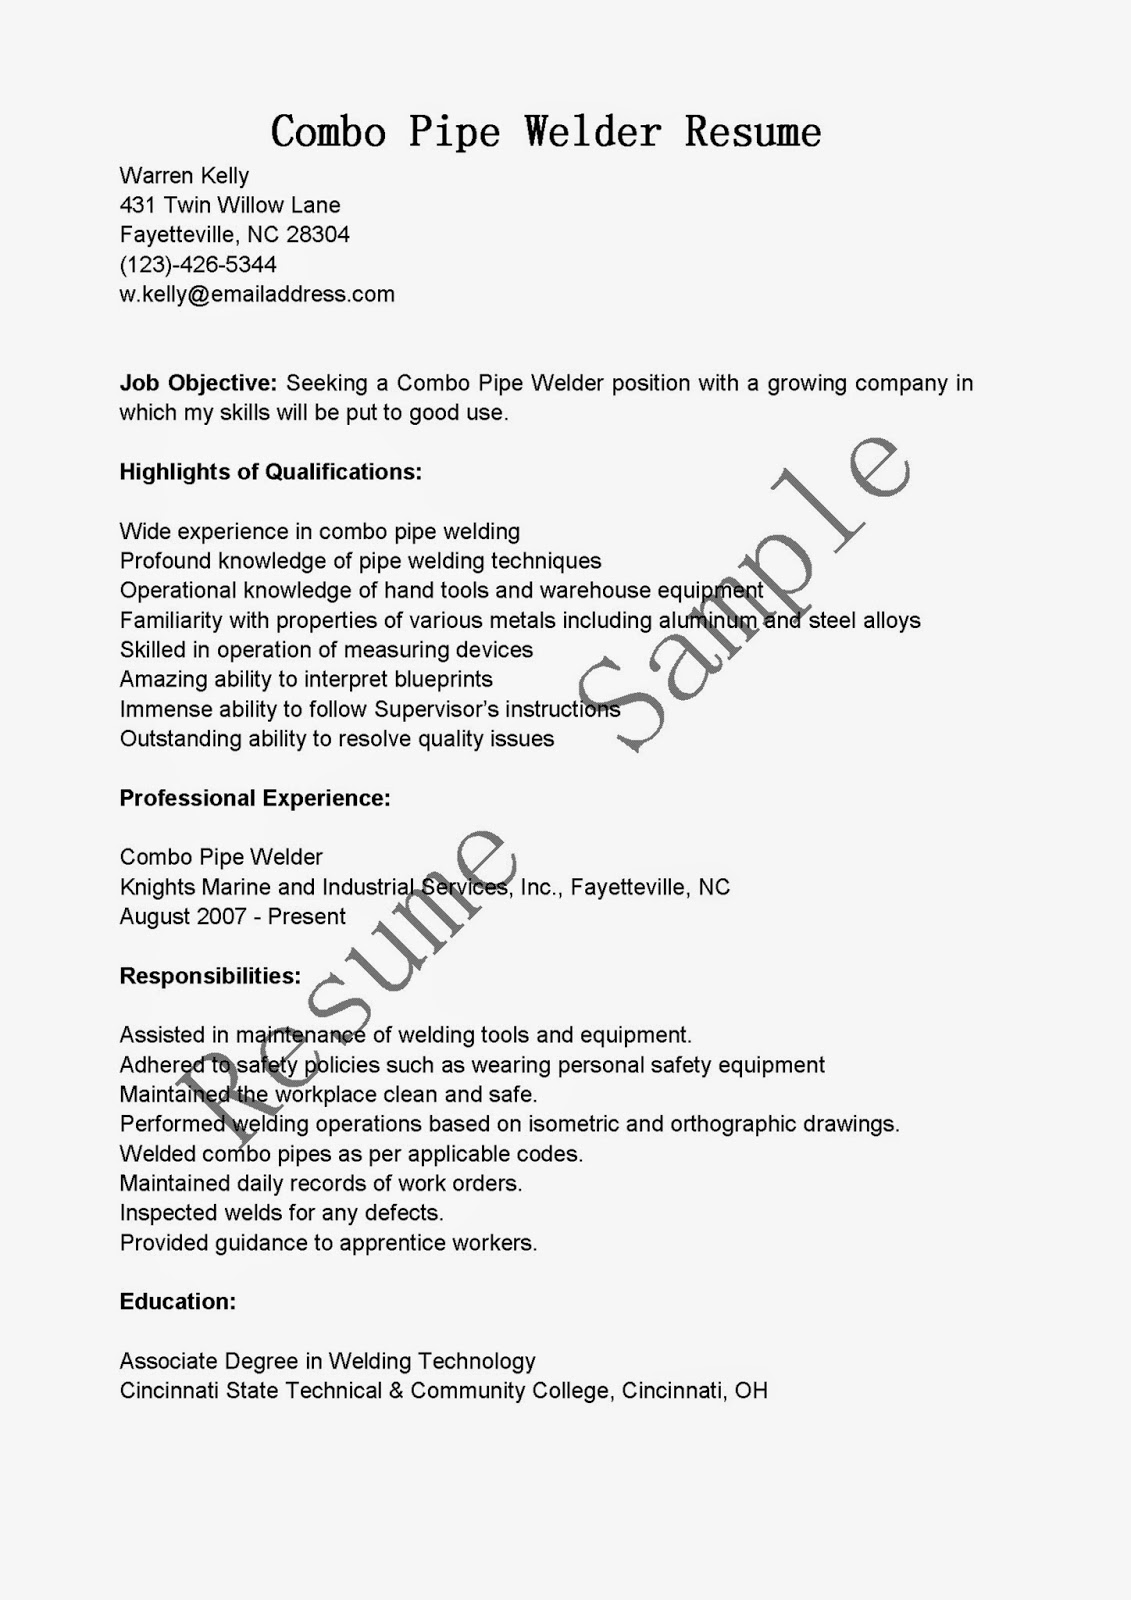 Resume For Welder Job Resume Samples Combo Pipe Welder Resume Sample